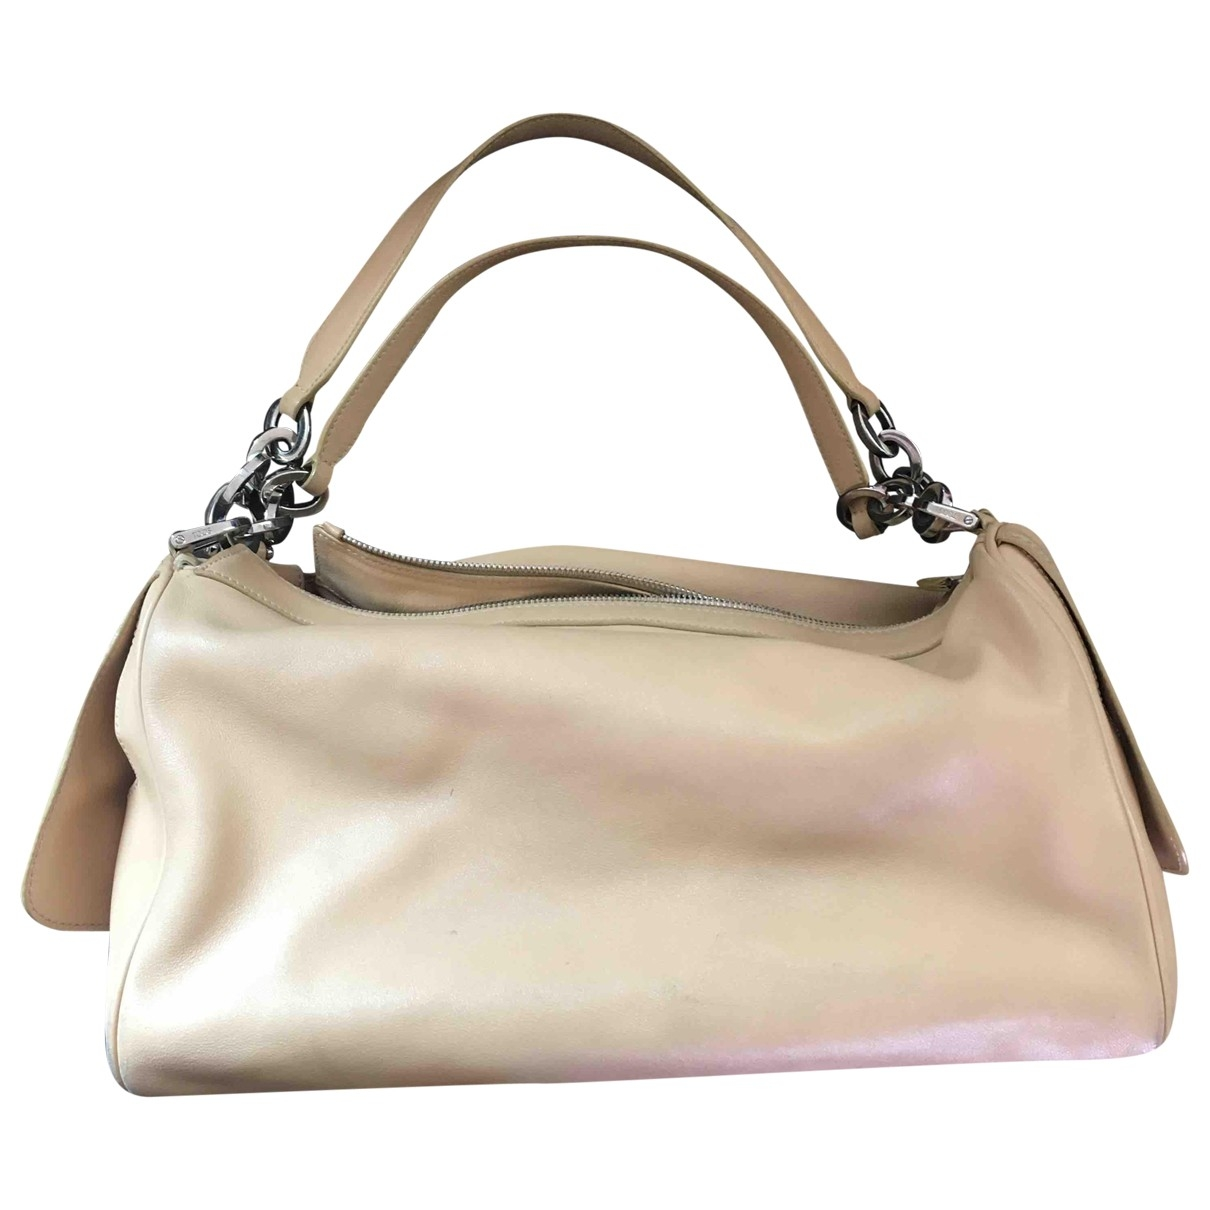 Tod's \N Beige Leather handbag for Women \N